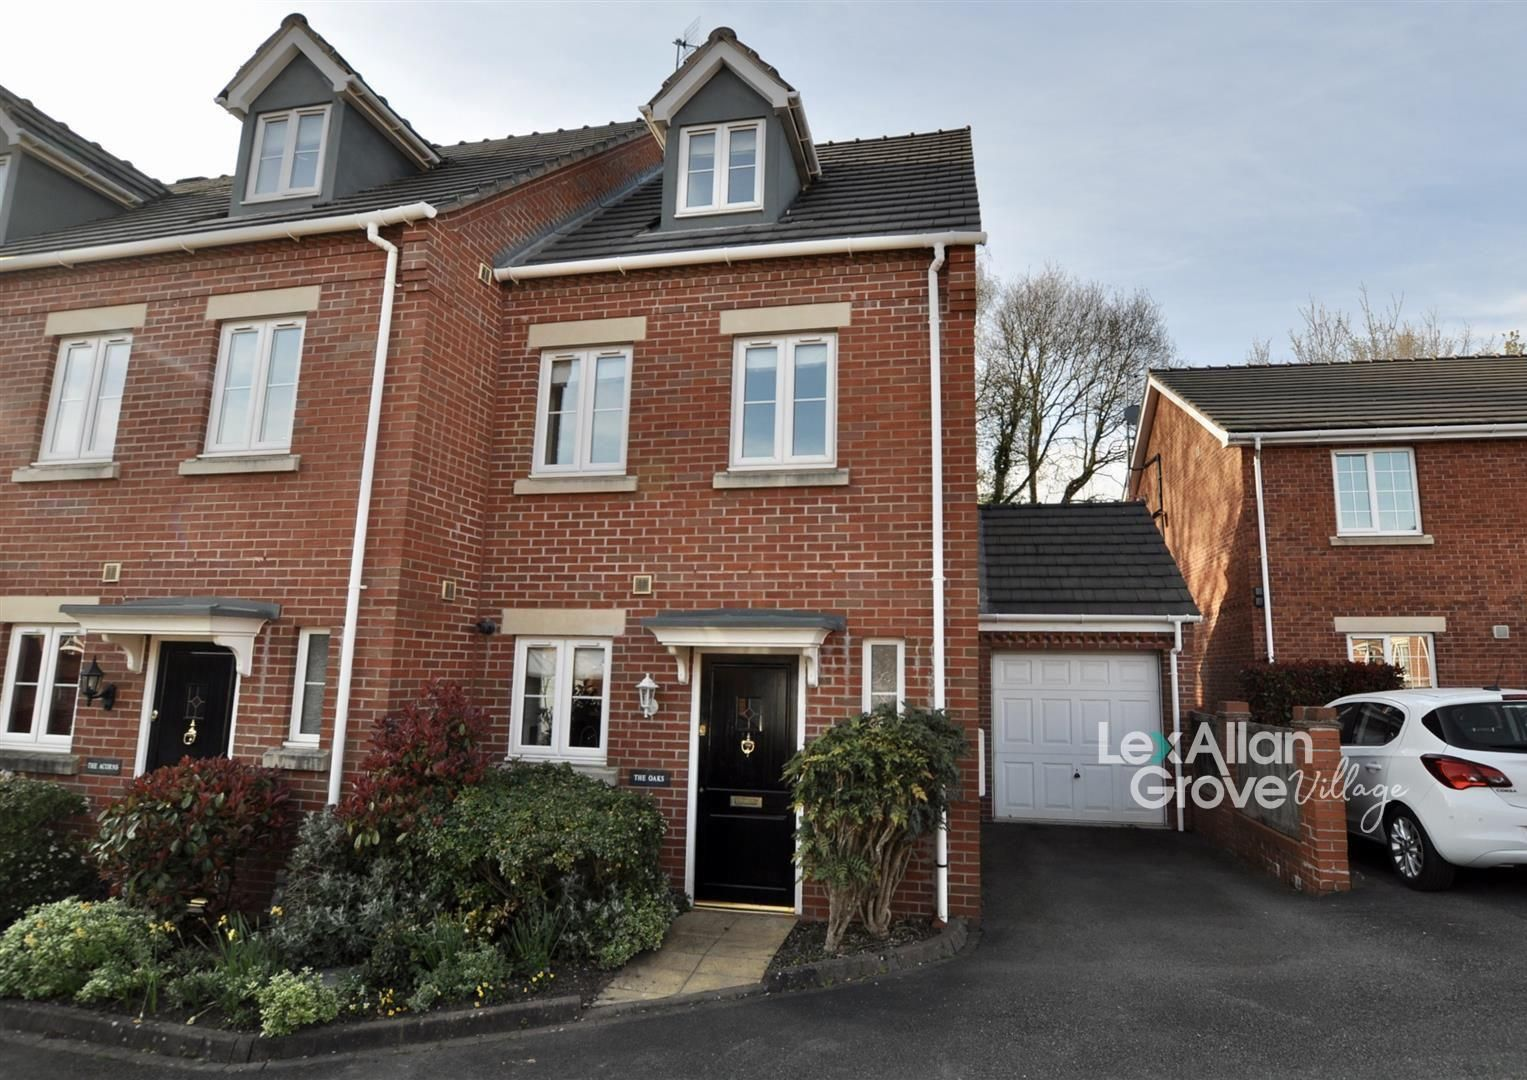 3 bed town-house for sale in Blakedown, DY10